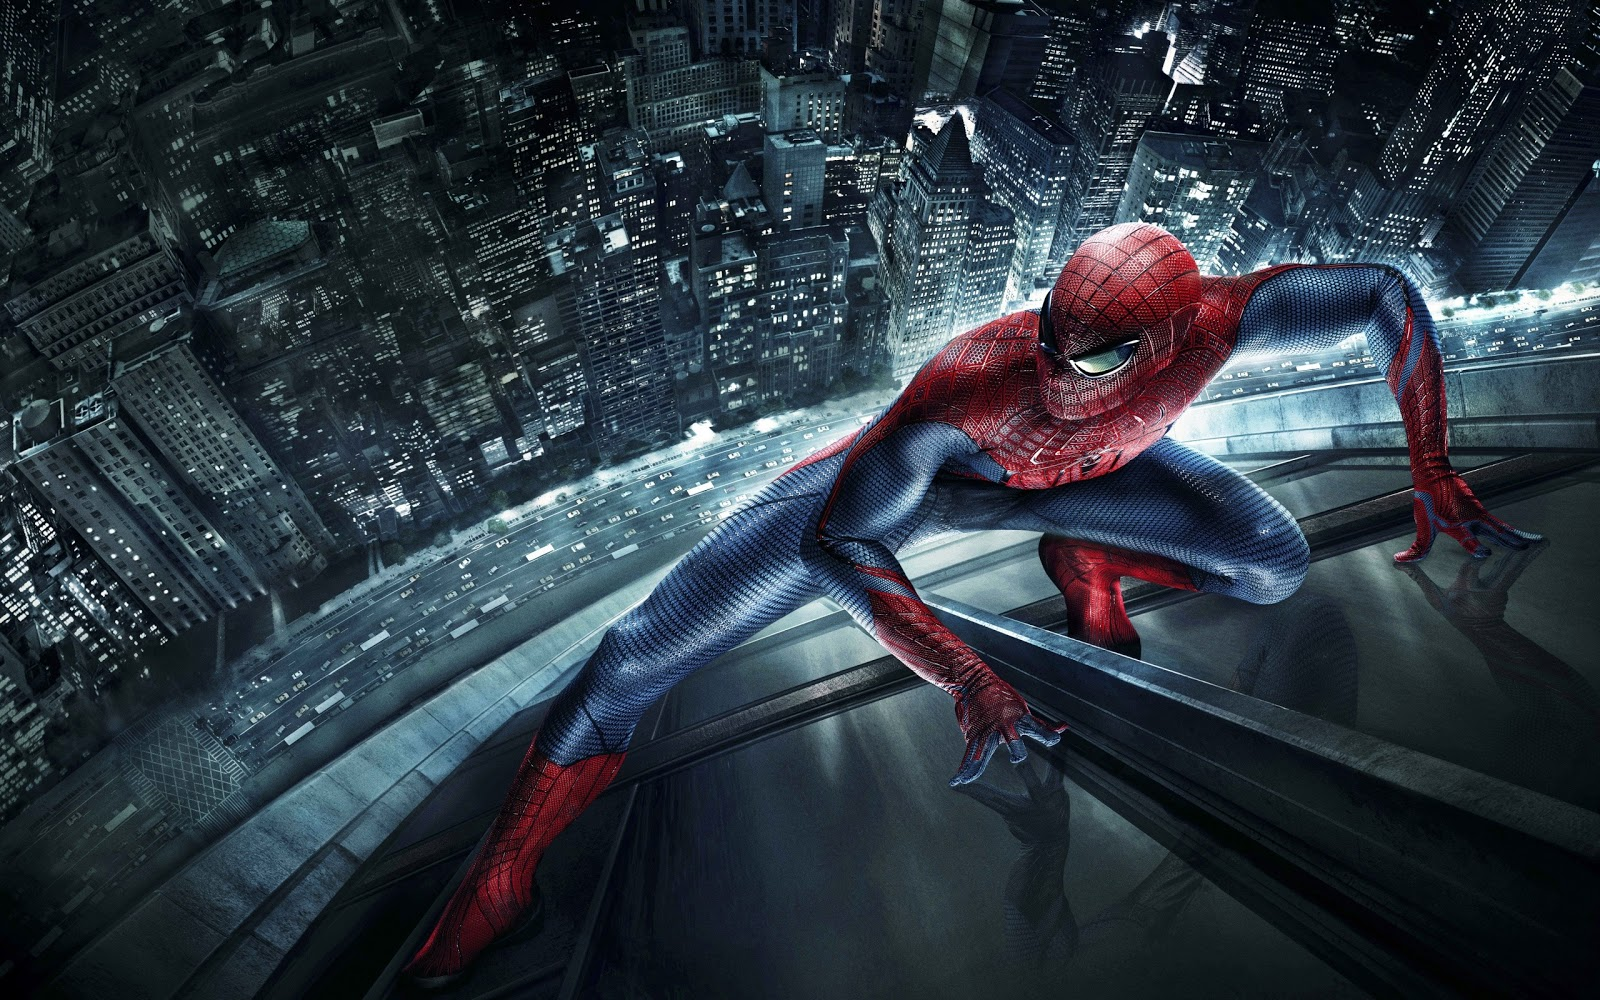 Spider Man Movie Wallpaper HD 1023.1 Kb